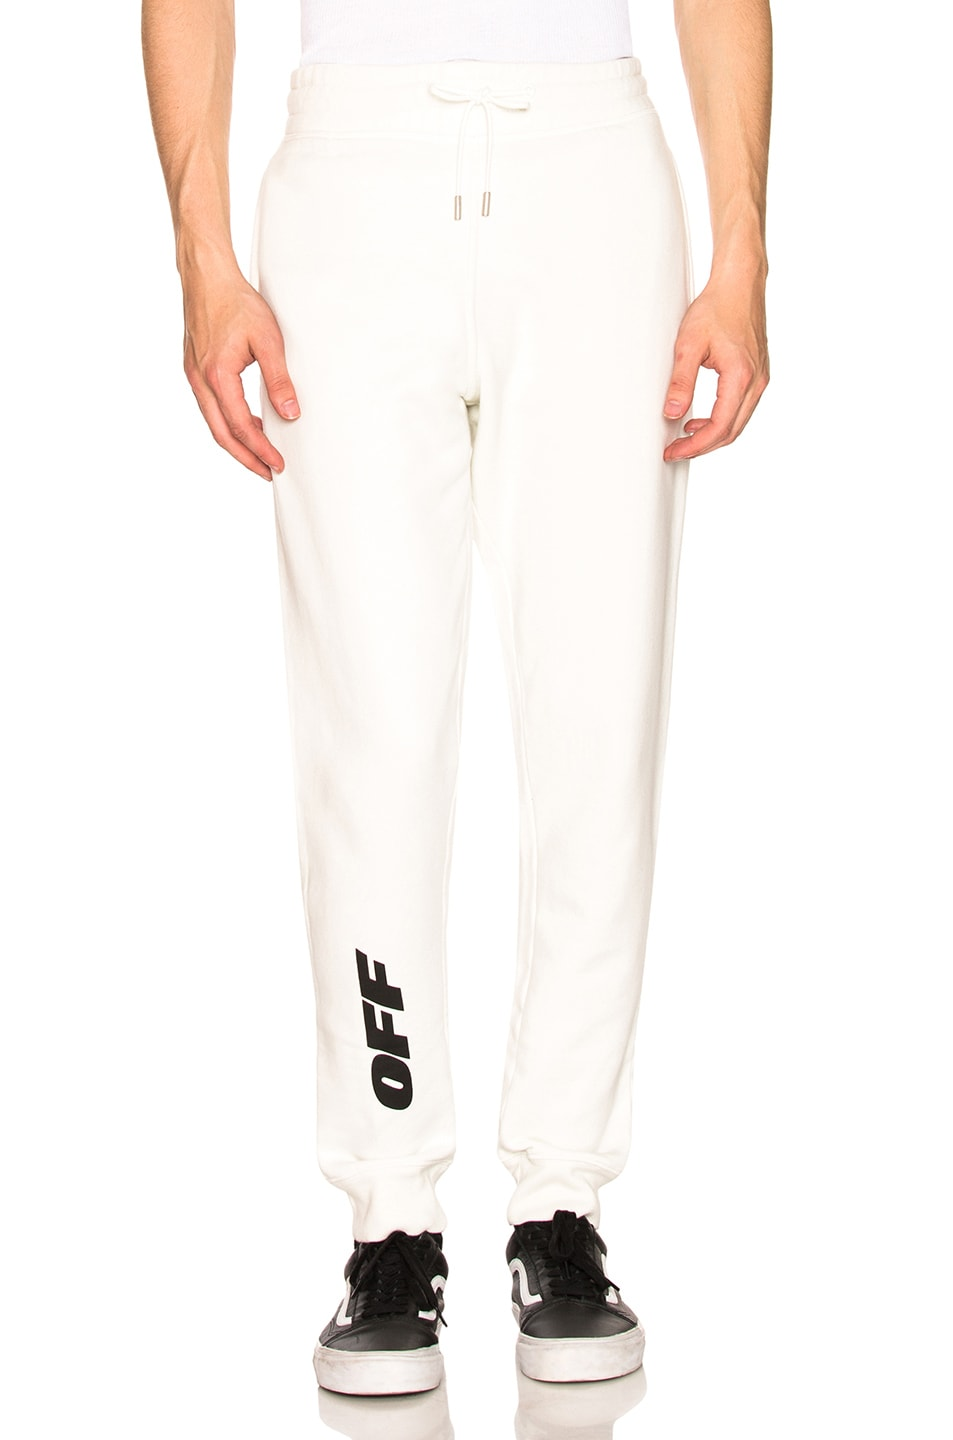 wing off sweatpants Off-white Free Shipping Discounts Sale Visit Cheap Sale Authentic Best Seller Online Best Sale For Sale DUolUdxgD